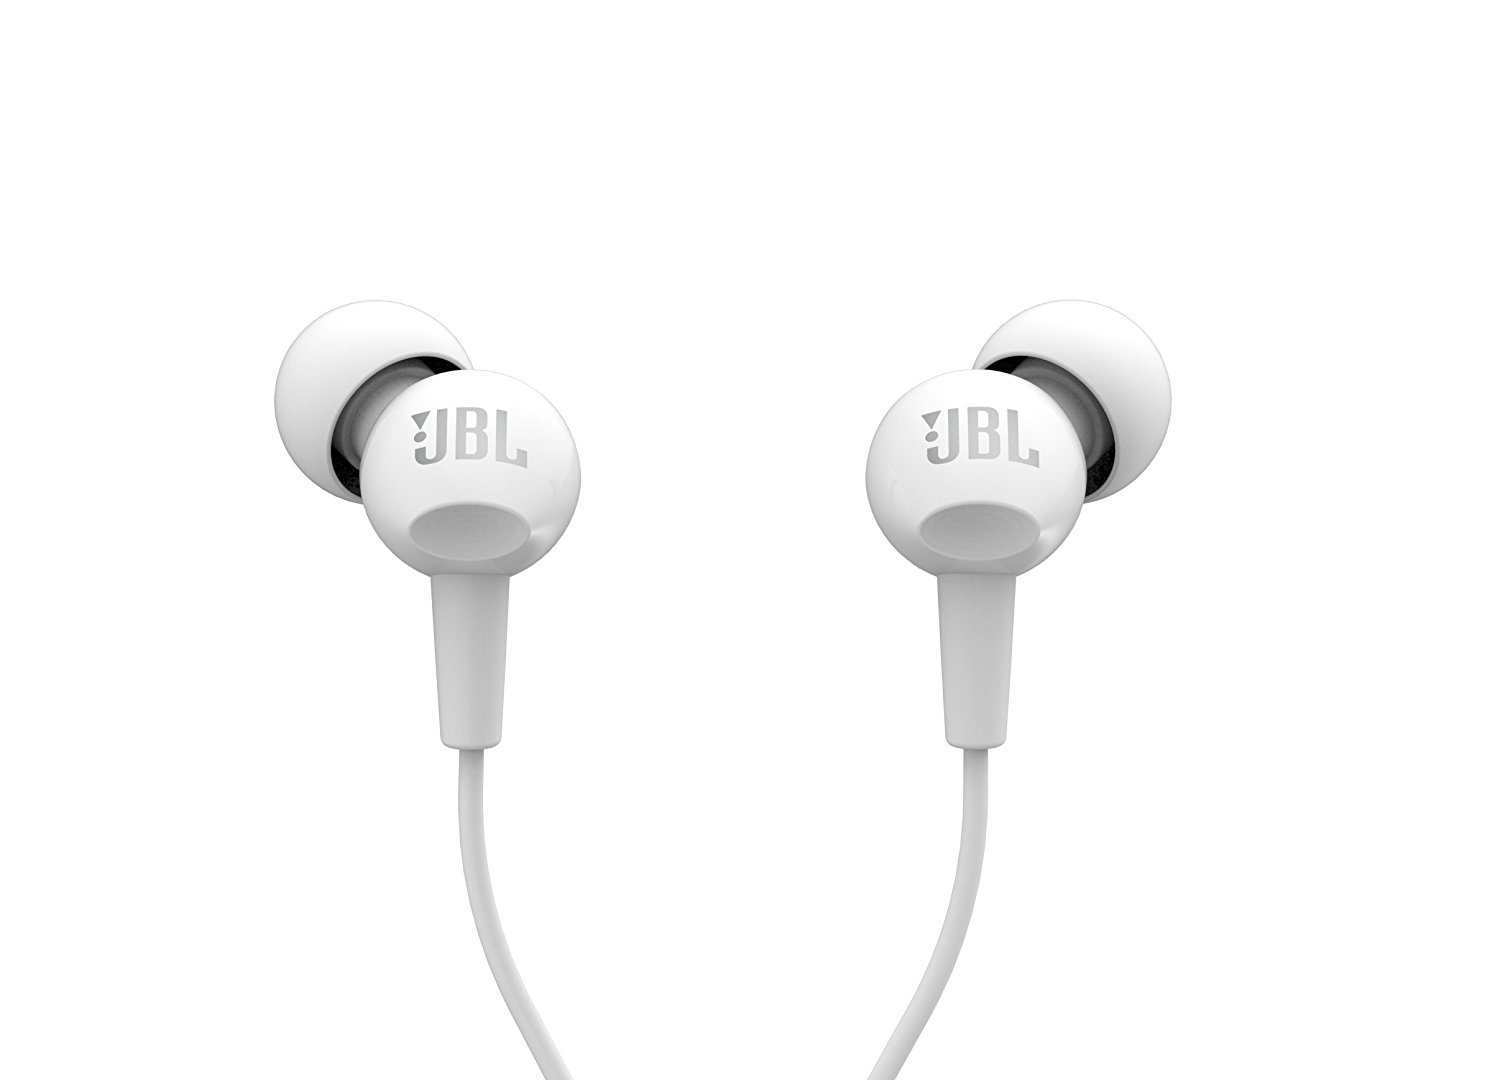 04a72f0a3f5 JBL C100Si Dynamic Headset Offers, Coupons & Price in India - CKS ...